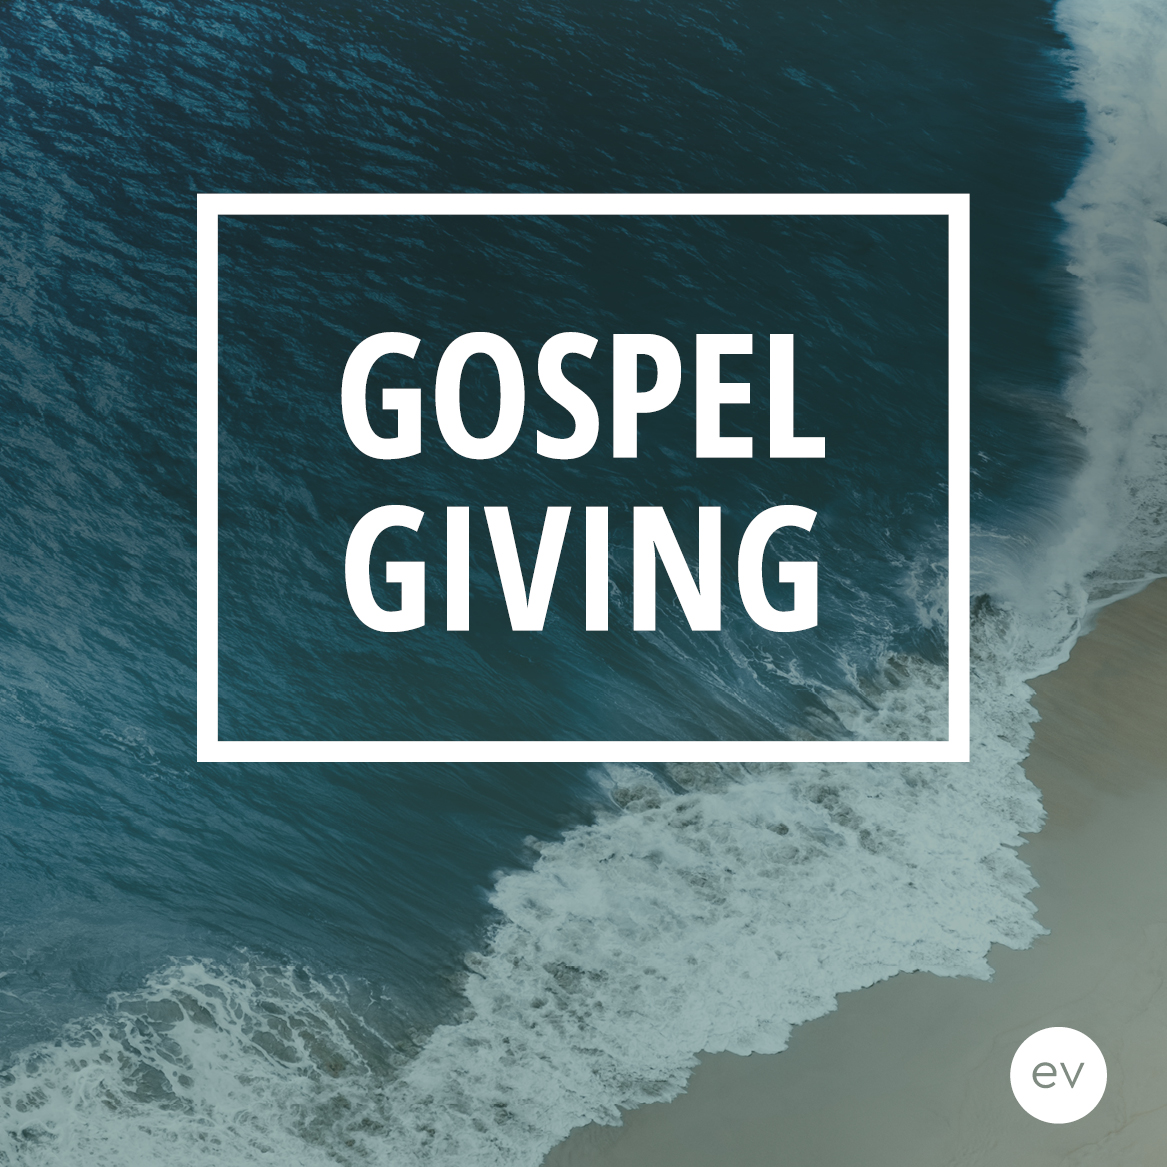 Gospel Giving